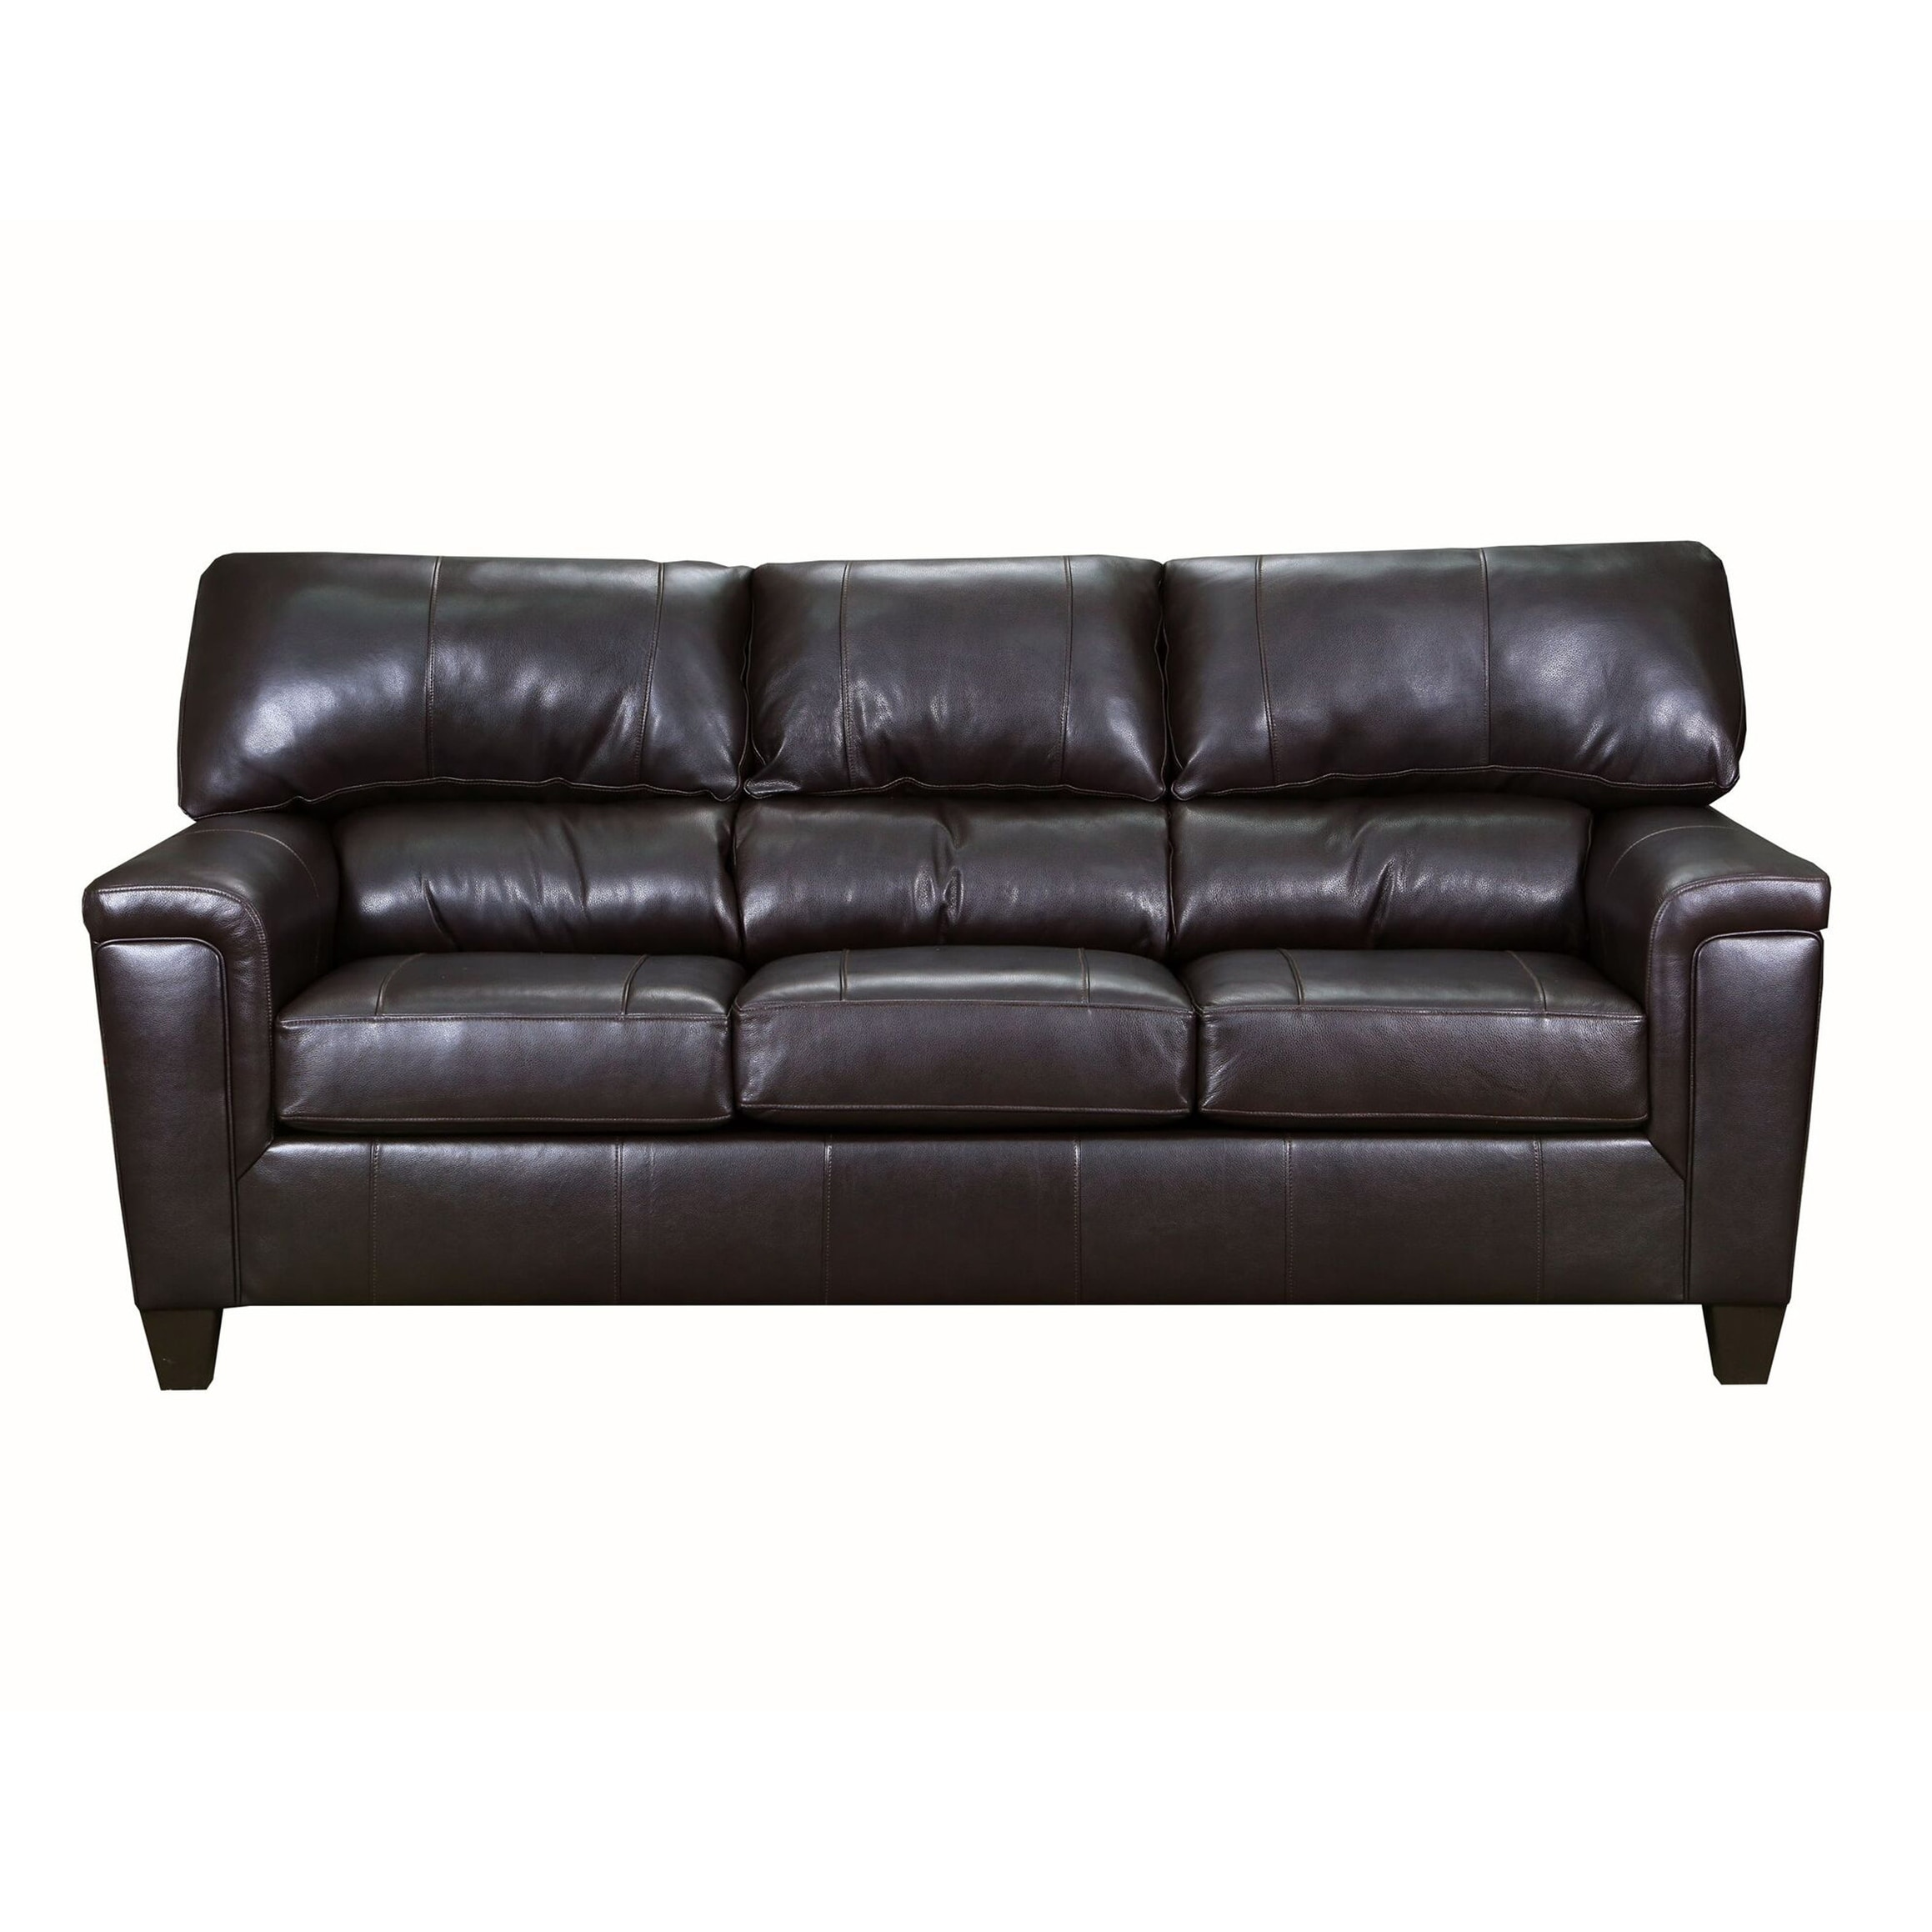 - Shop David Top Grain Leather Queen Sleeper Sofa - Overstock - 25627691